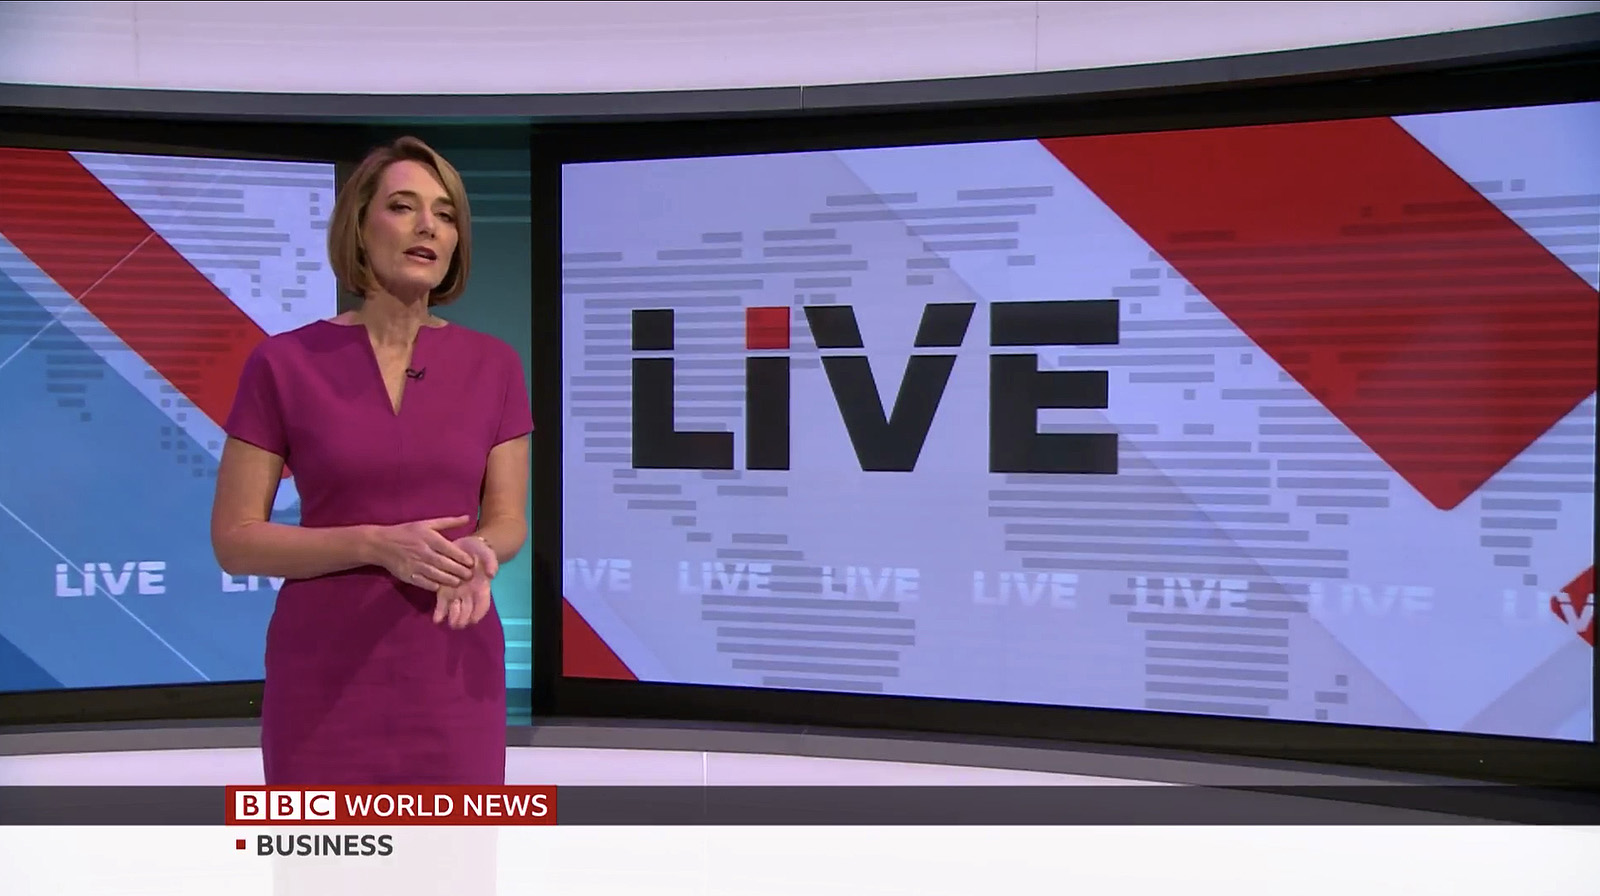 NCS_Live_Lucy-Hockings_BBC-World-News_015